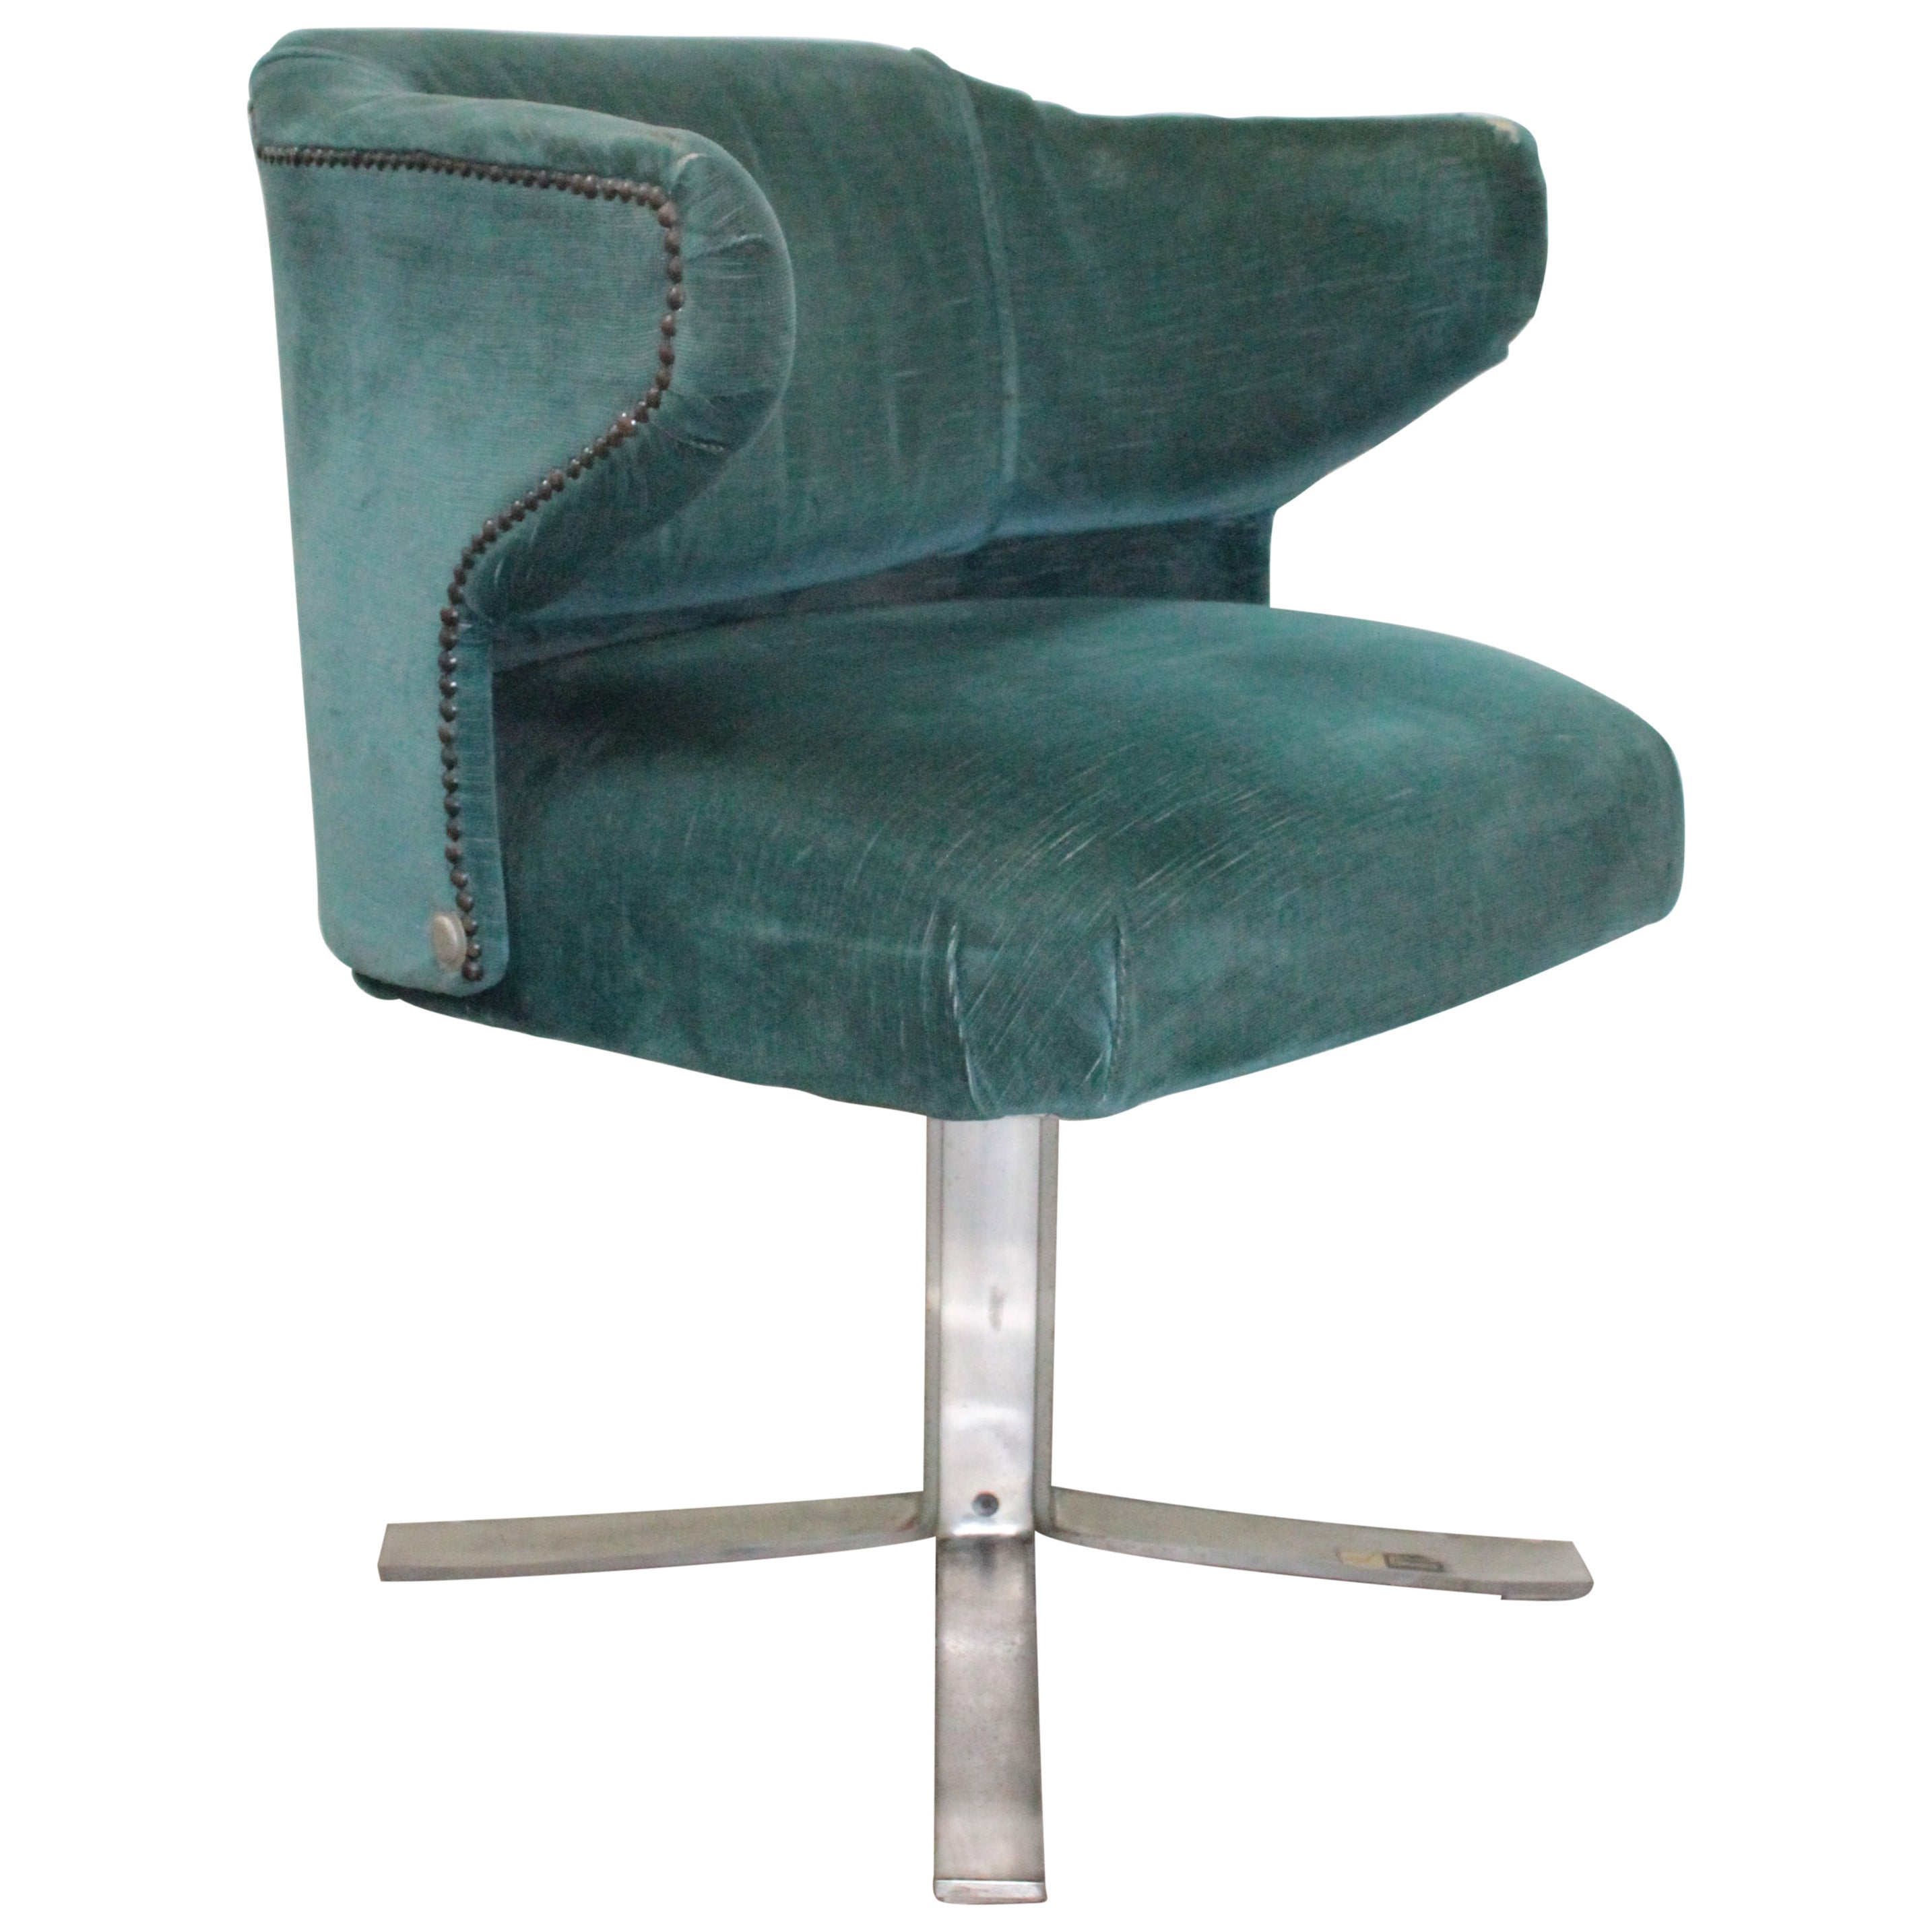 Vintage Italian Revolving Armchair by Gianni Moscatelli for Formanova, 1970s